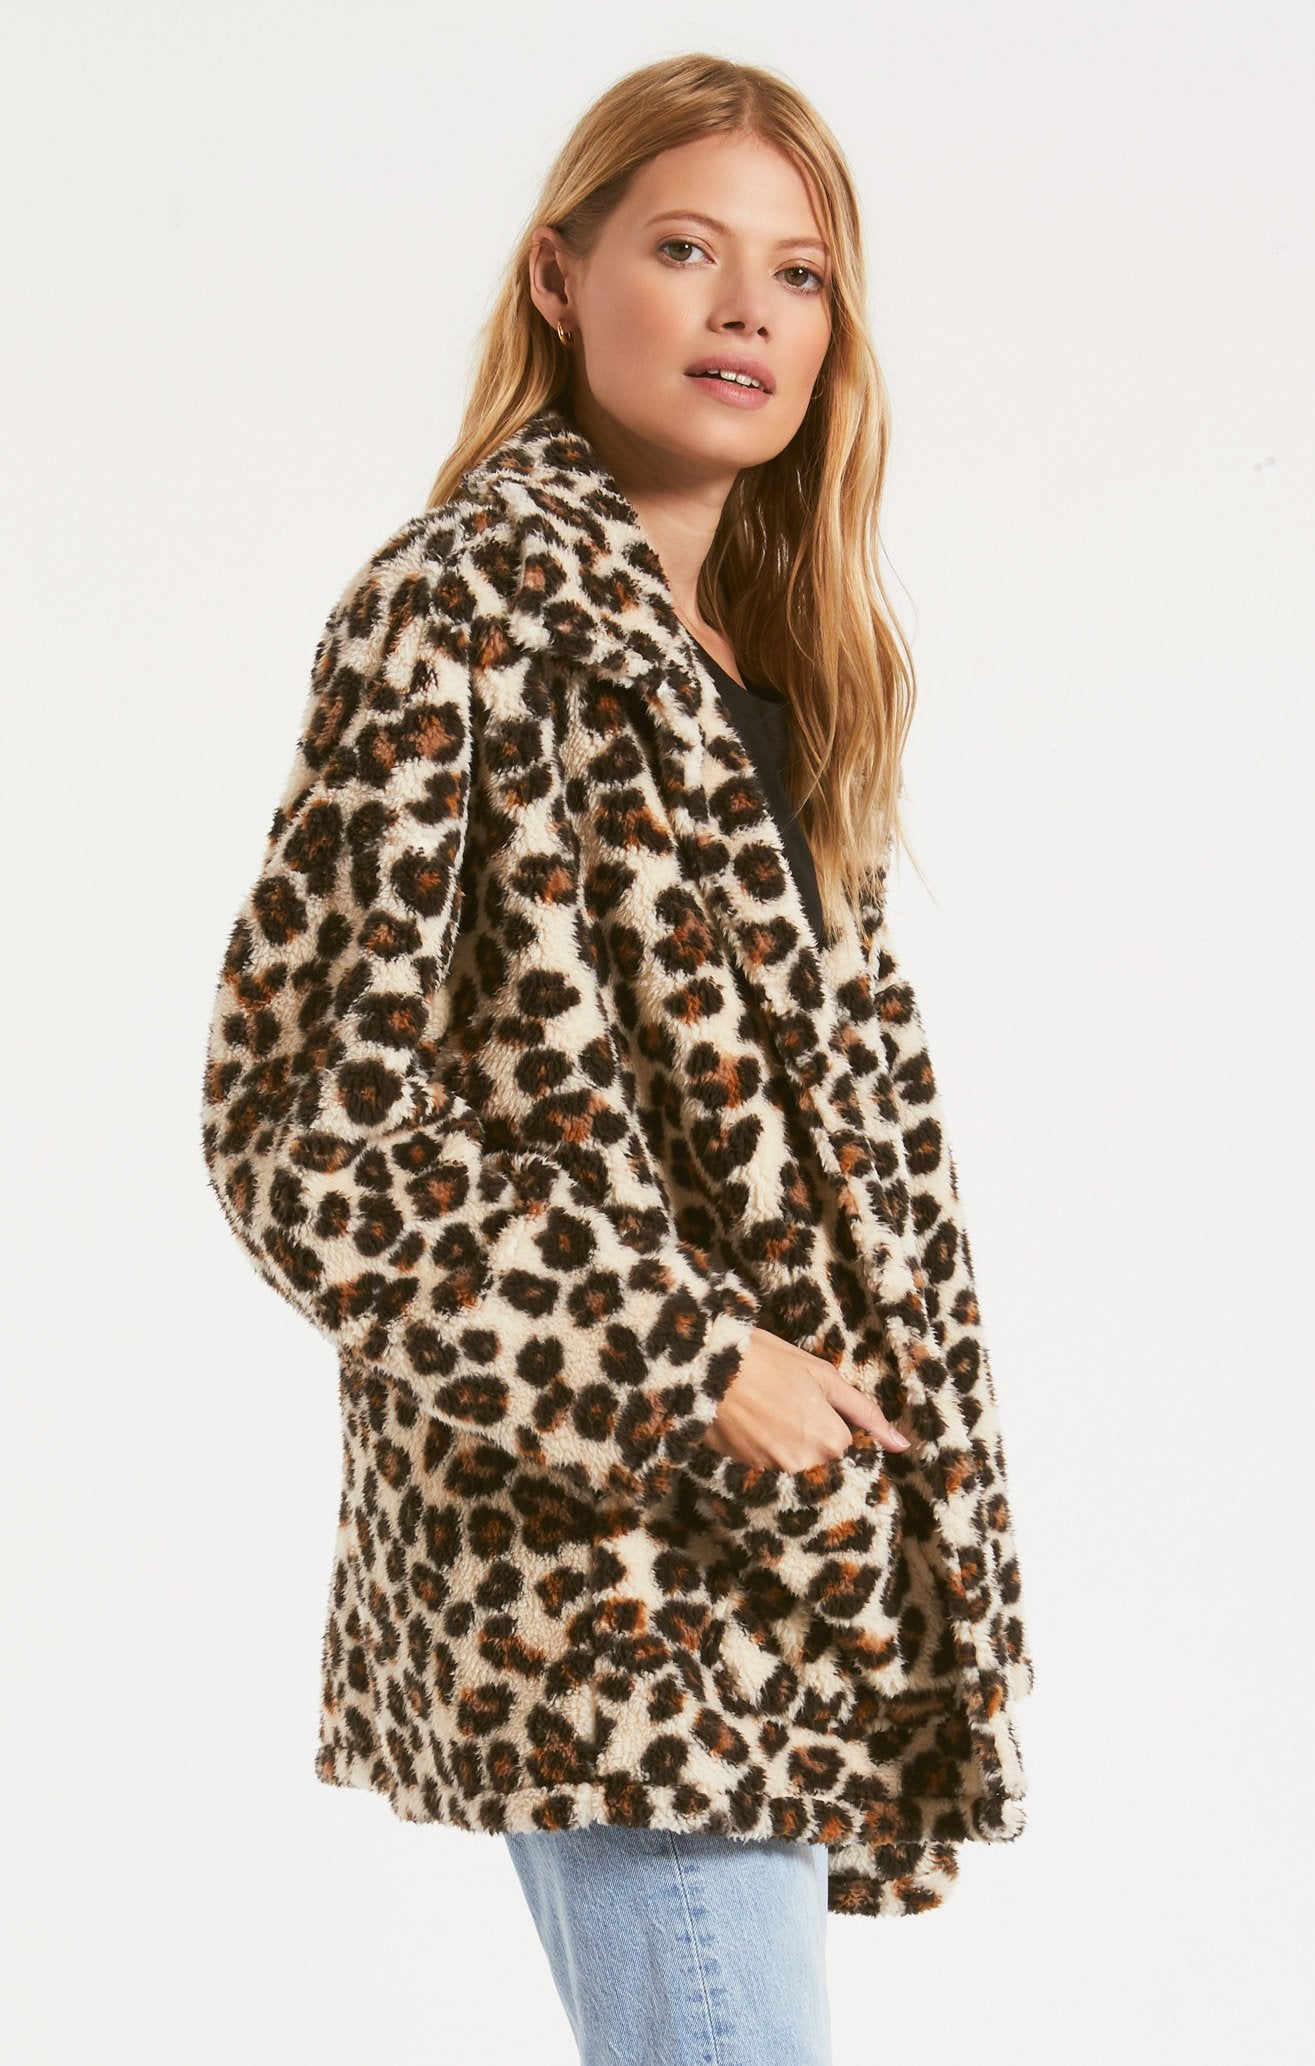 Jackets Leopard Sherpa Teddy Bear Coat Natural